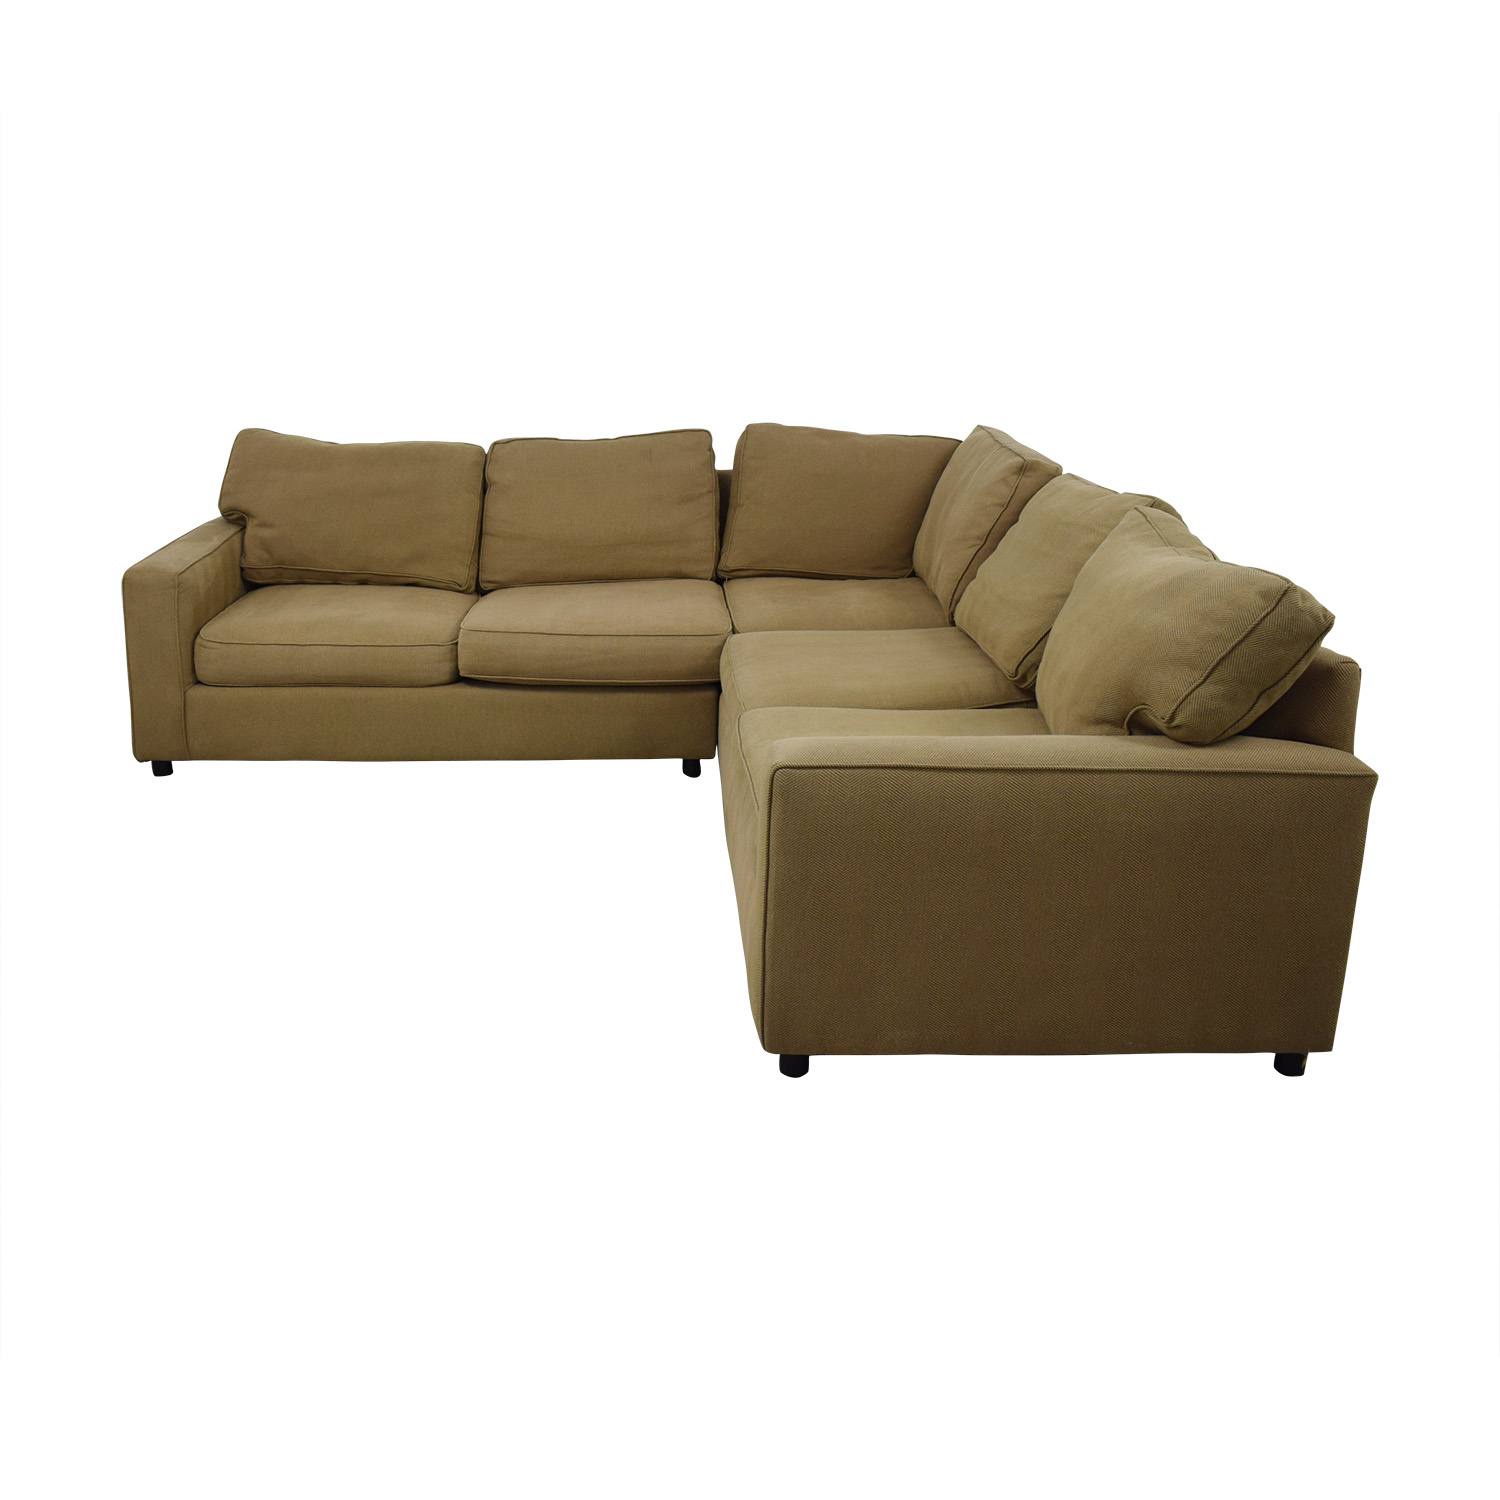 Pottery Barn Pottery Barn Beige L-Shaped Sectional discount